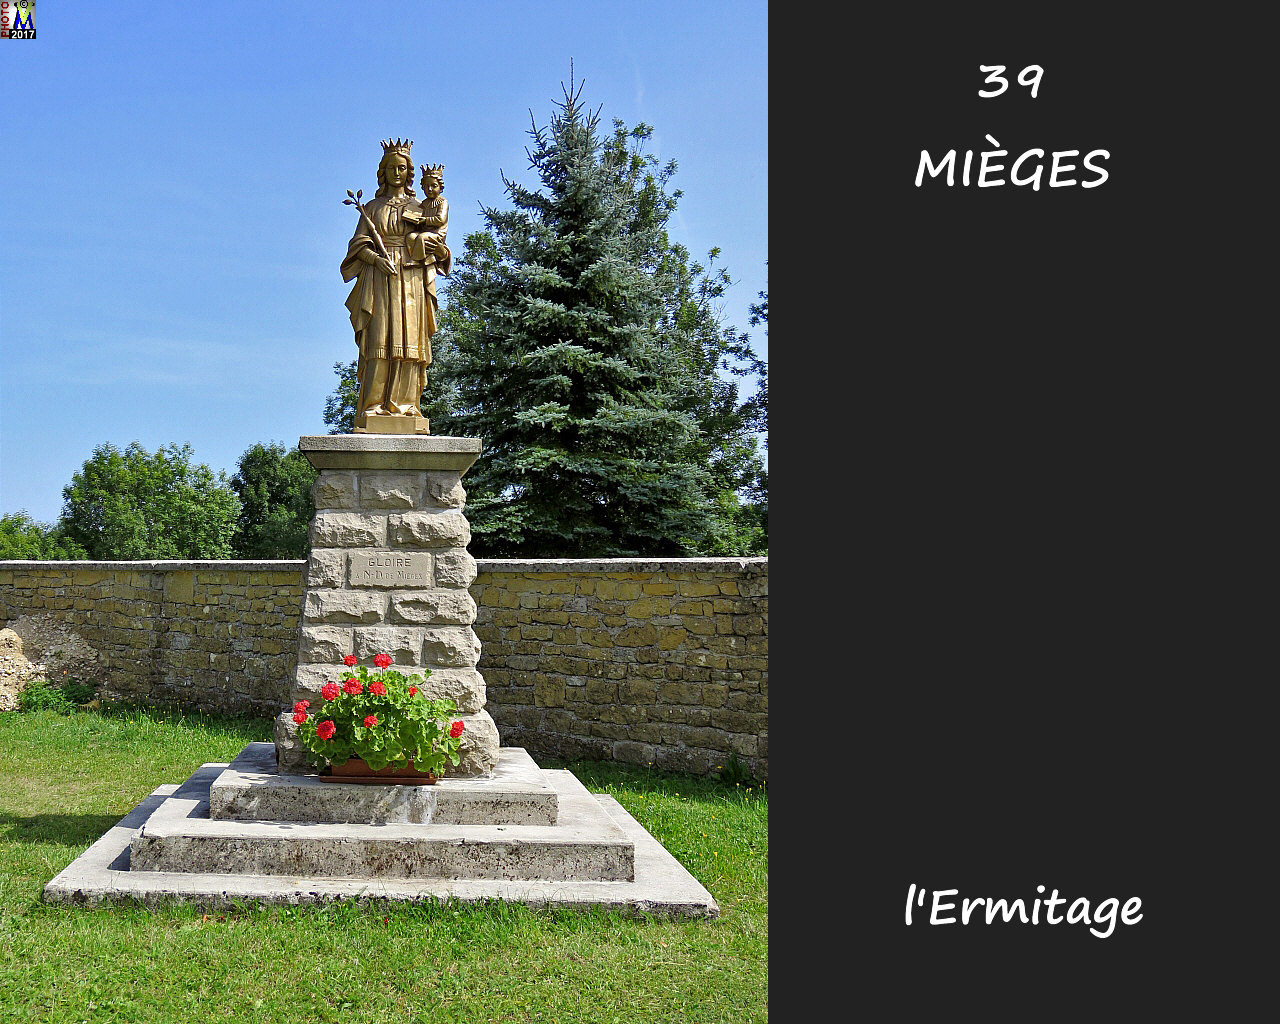 39MIEGES_Ermitage_150.jpg